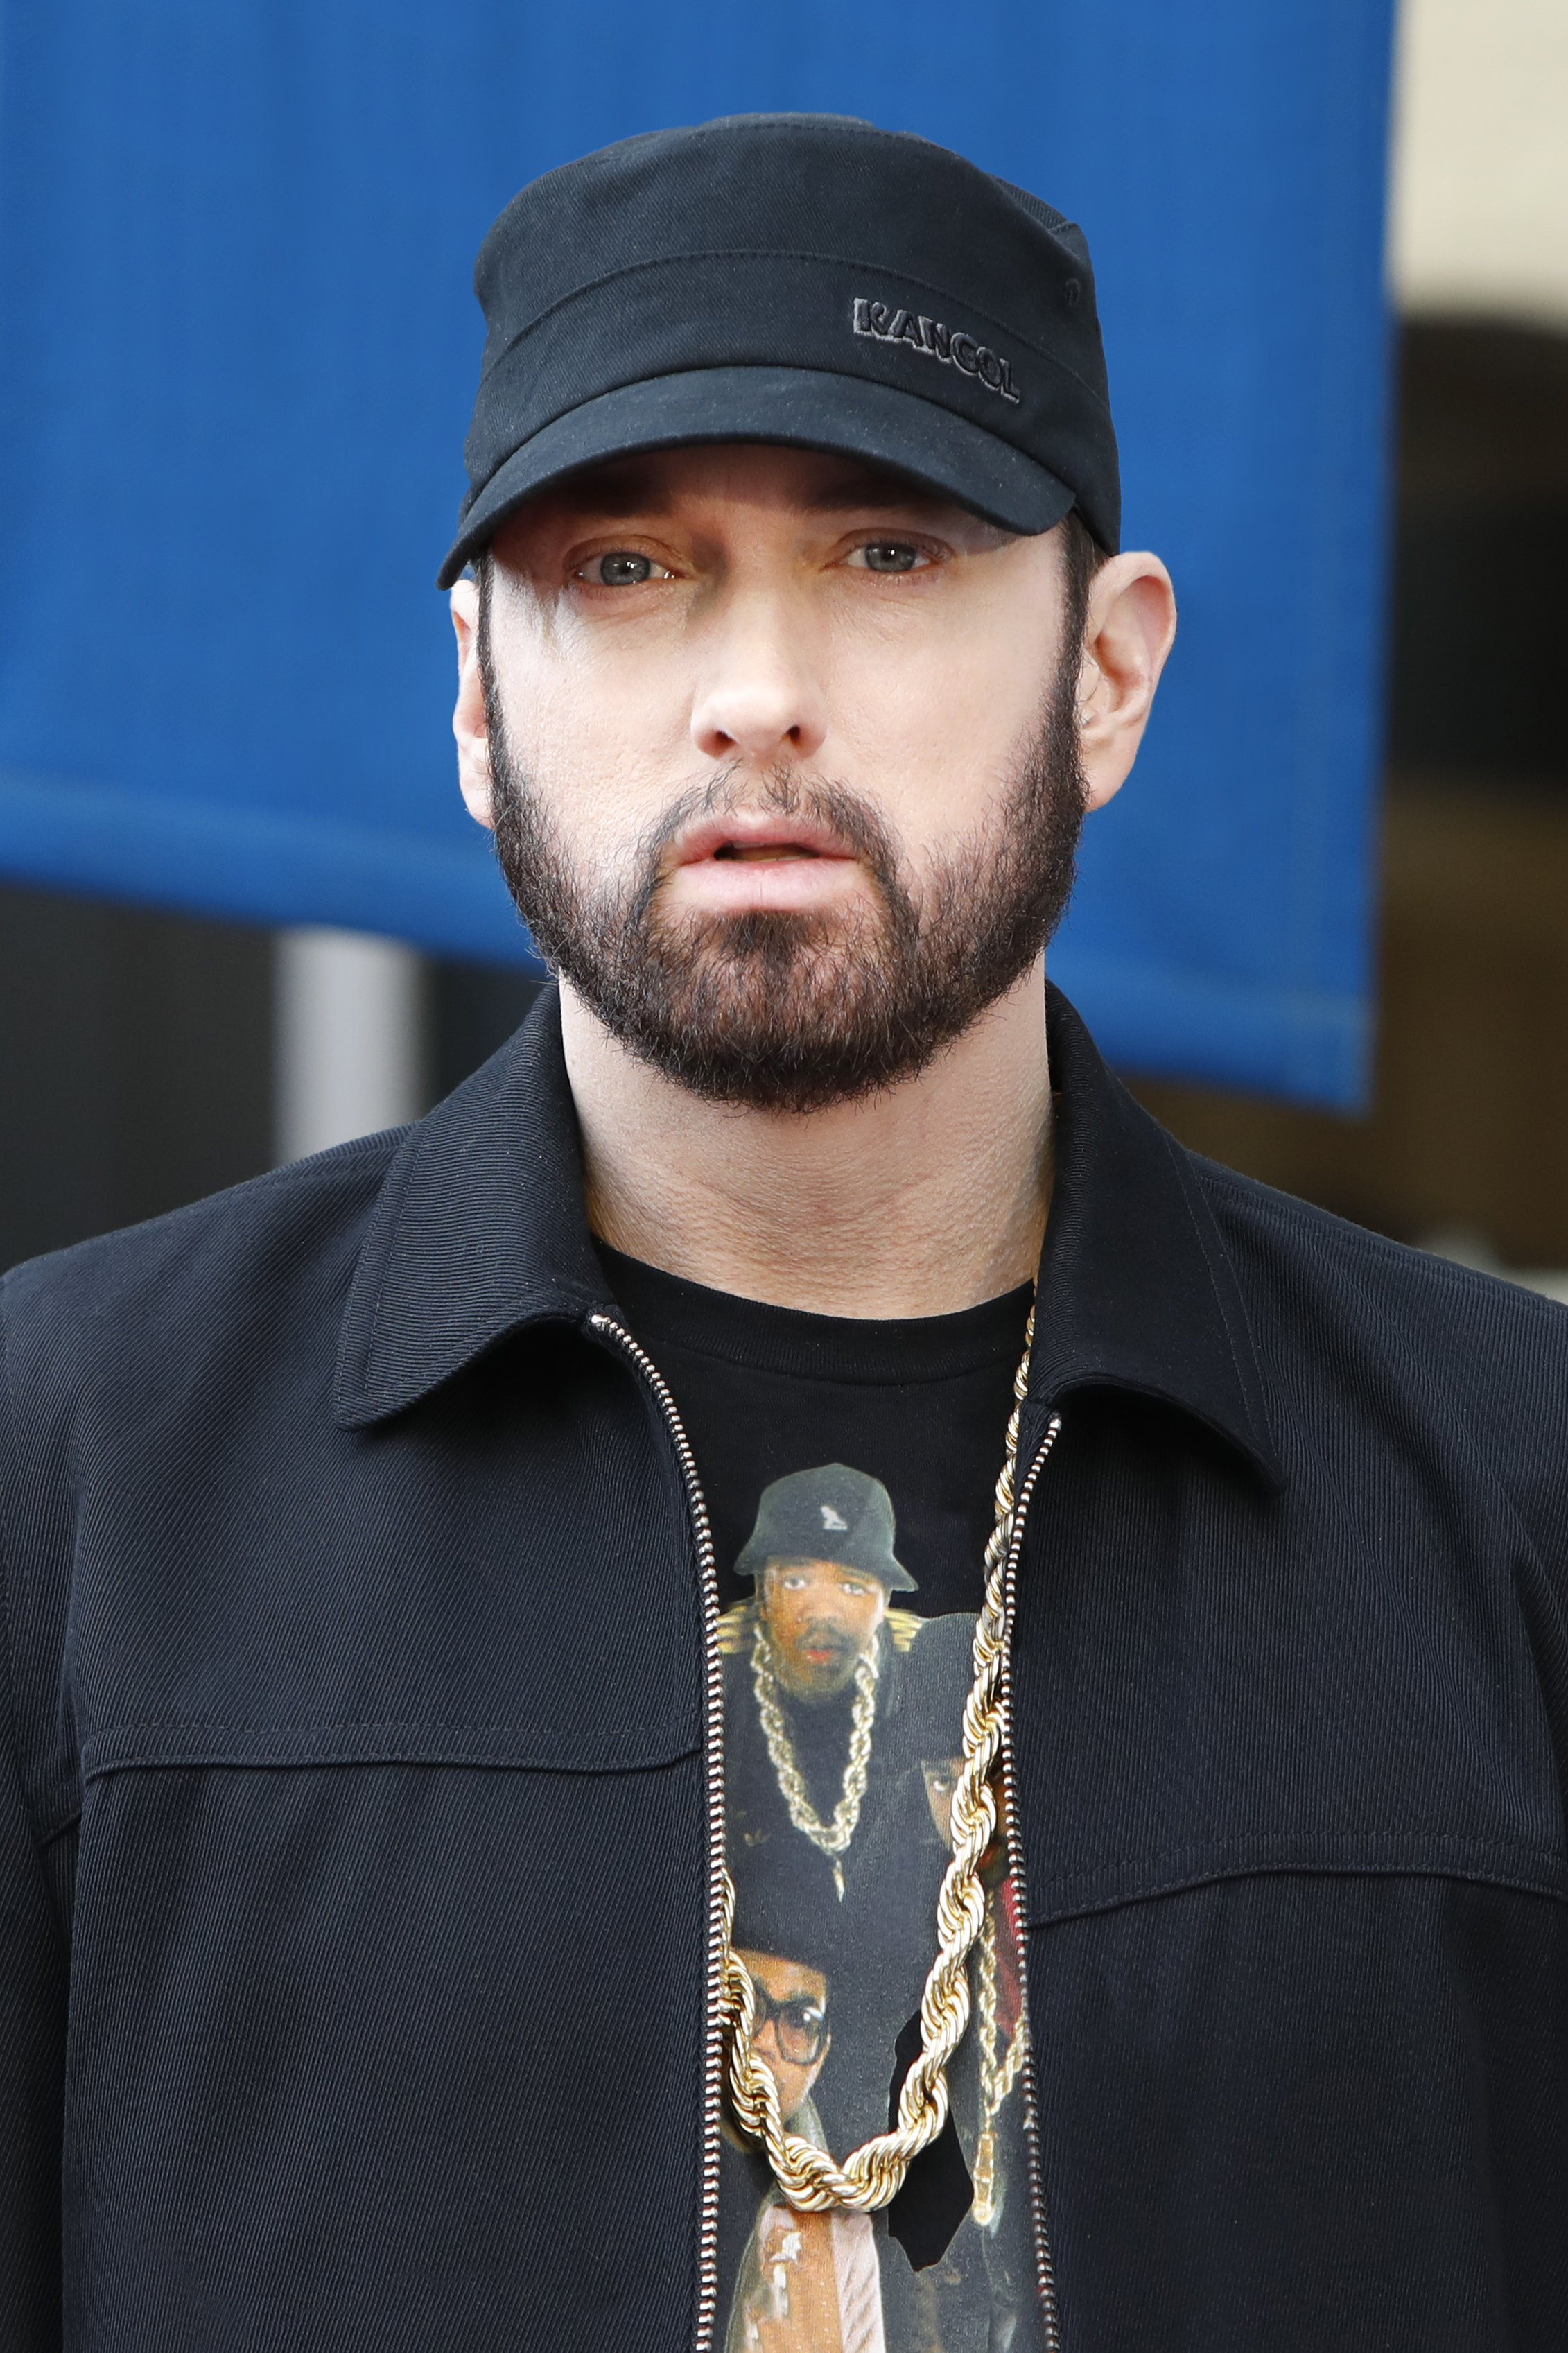 """Eminem a.k.a. Marshall Bruce Mathers III attends a ceremony honoring Curtis """"50 Cent"""" Jackson with a star on the Hollywood Walk of Fame on January 30, 2020 in Hollywood, California   Source: Getty Images"""